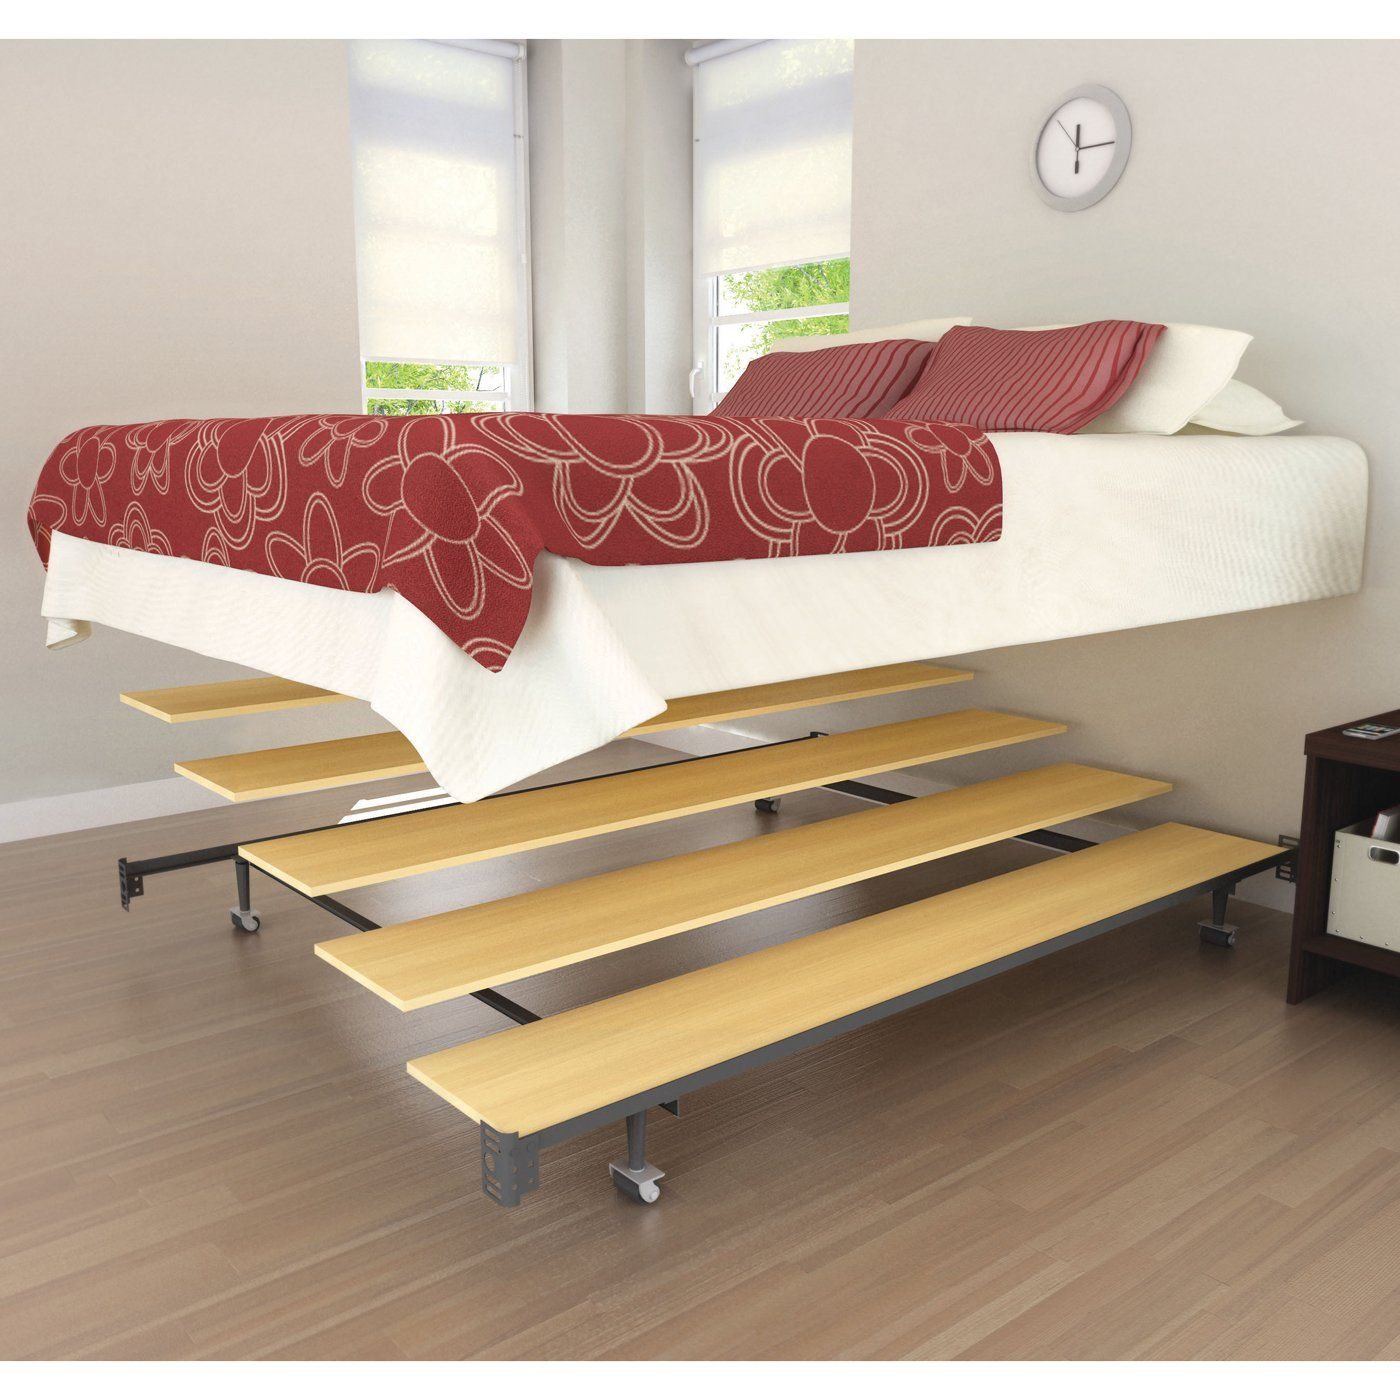 cool Amazing Queen Bed And Mattress Set 54 In Small Home Decor